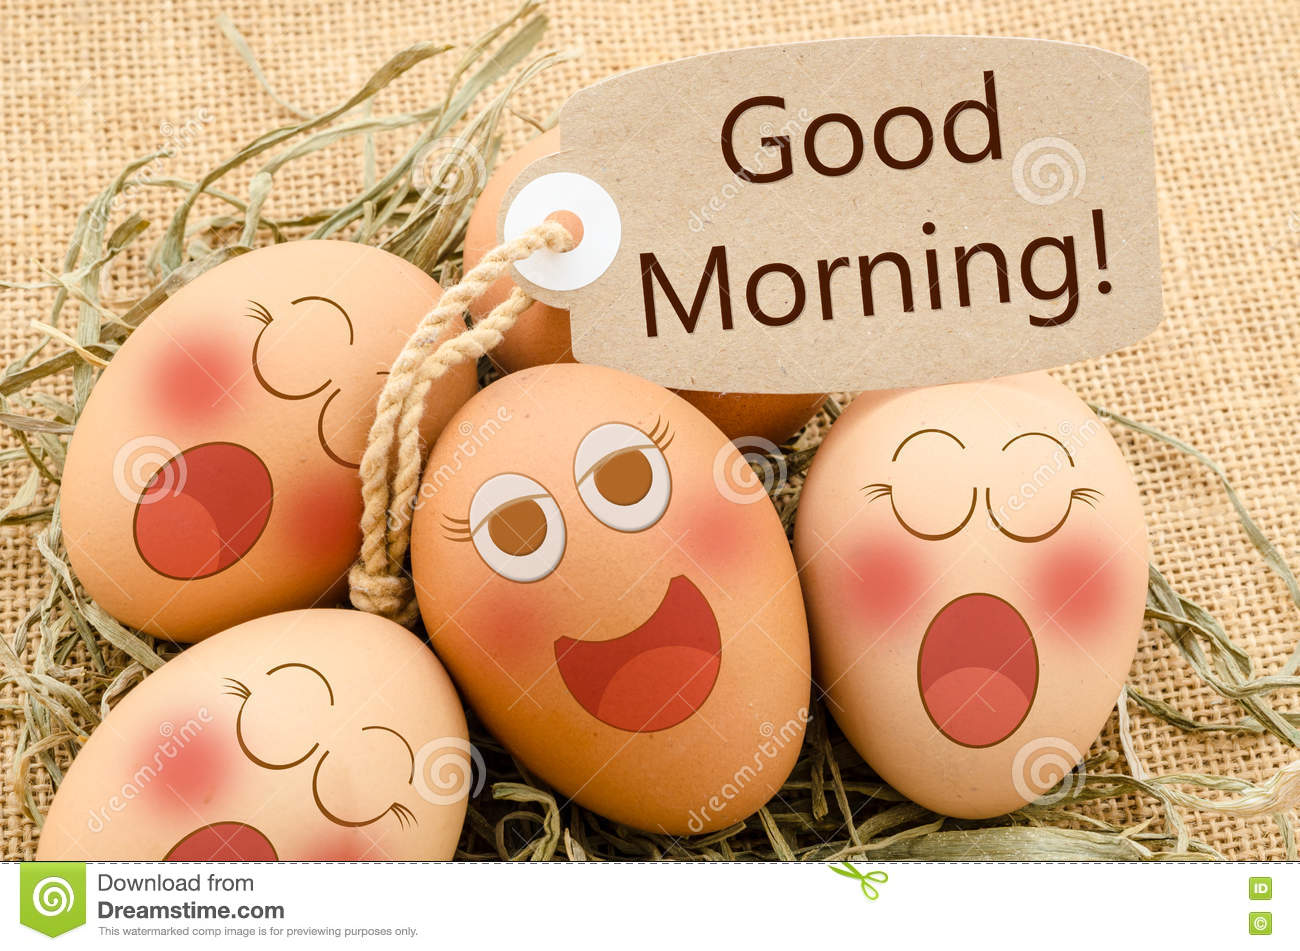 Good Morning Card And Smile Face Eggs Sleep Stock Photo Image Of